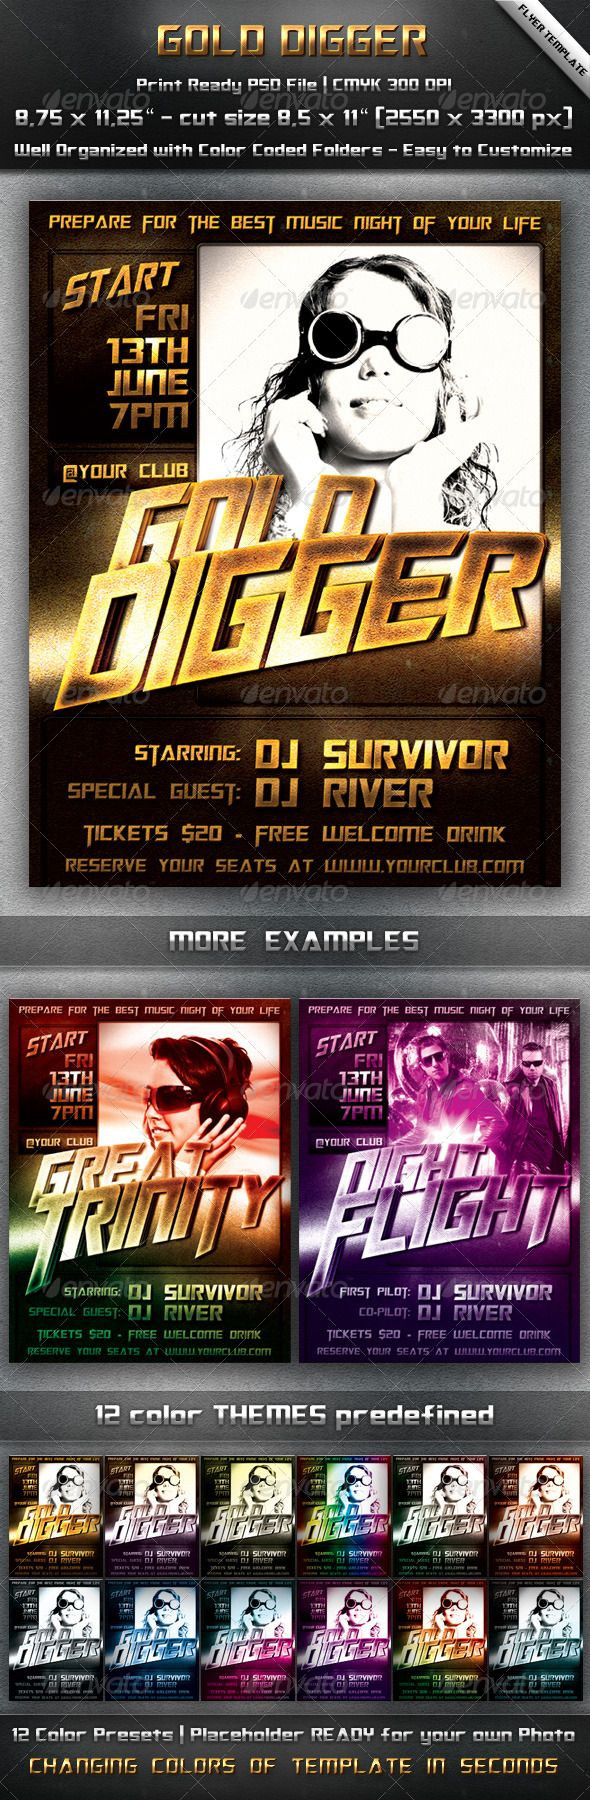 images about that s party flyer psd flyer golden digger flyer this template suits perfectly for advertising any house dance tv